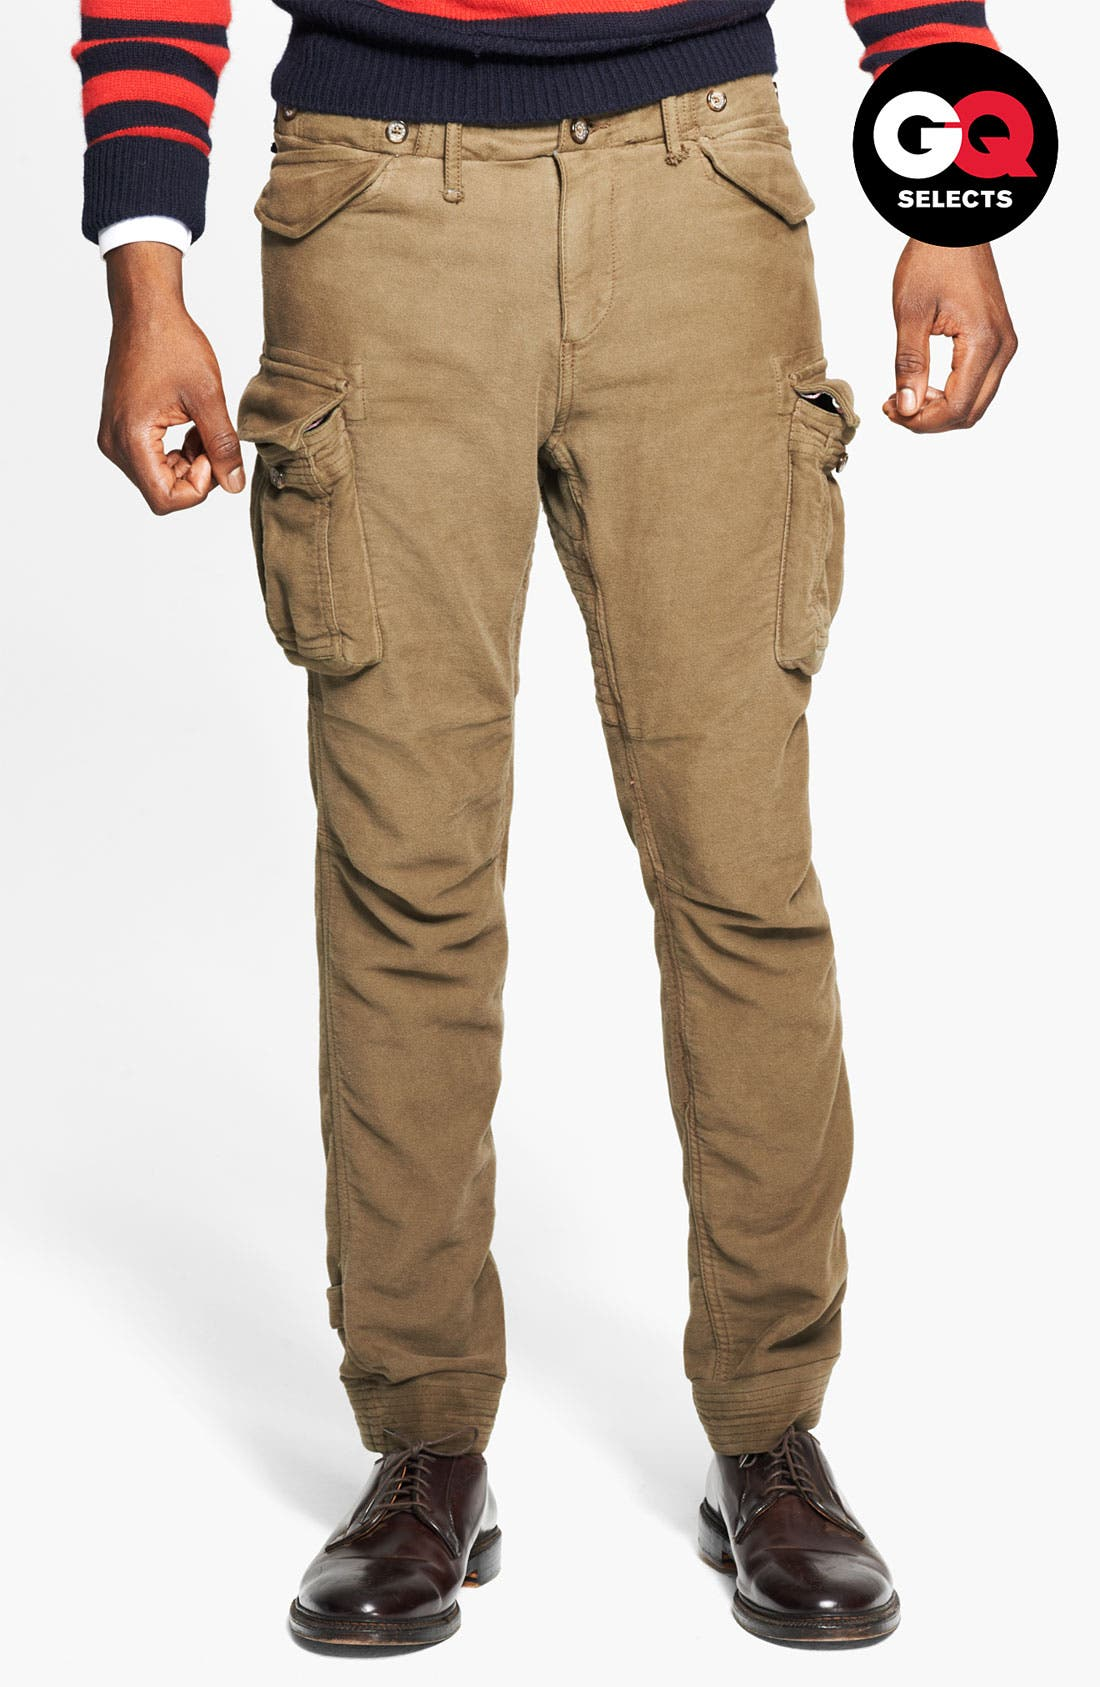 Skinny Moleskin Cotton Cargo Pants,                             Main thumbnail 1, color,                             301